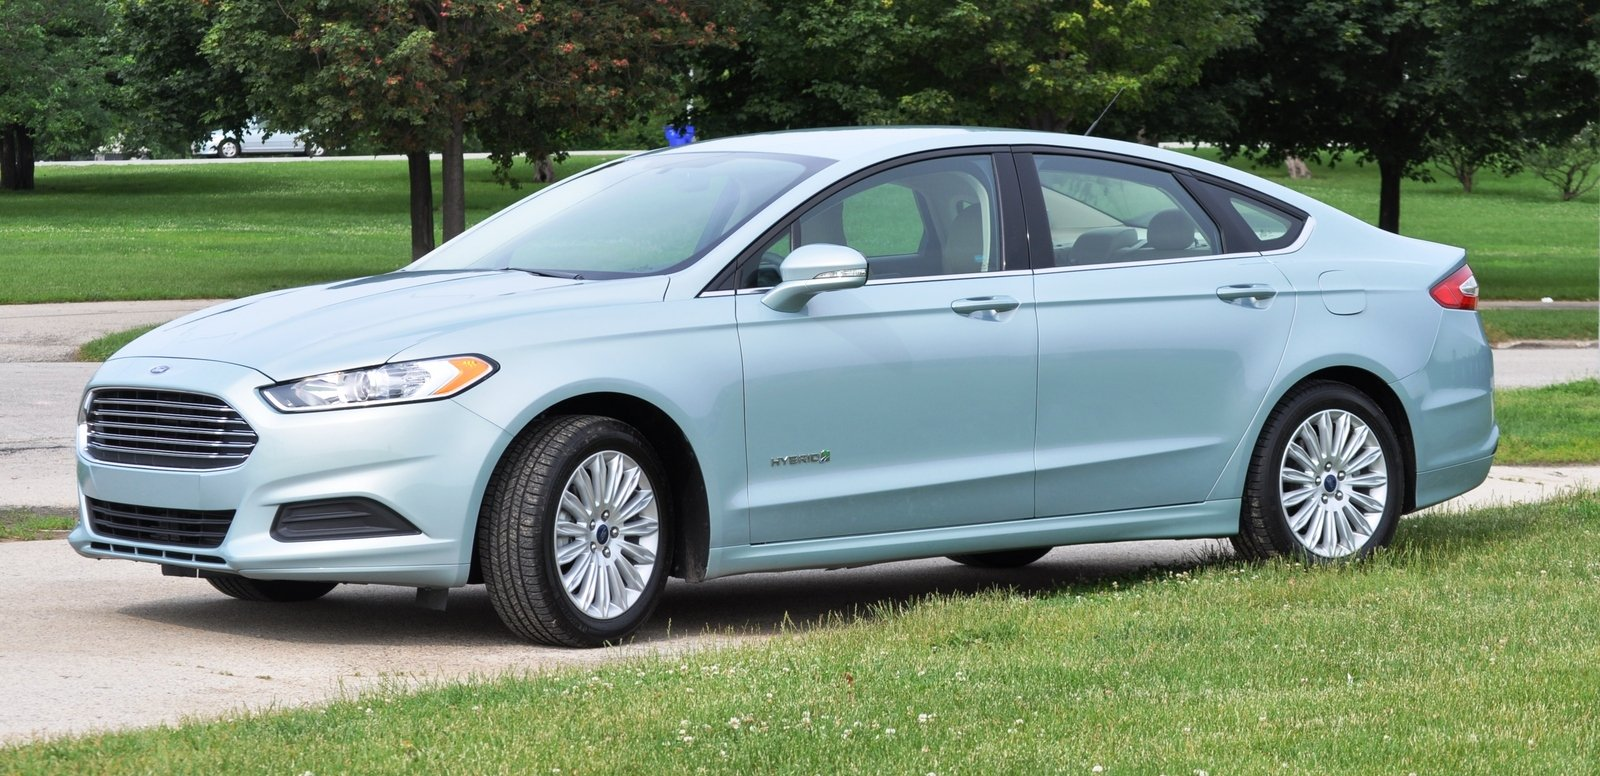 2014 ford fusion hybrid picture 512560 car review top speed. Black Bedroom Furniture Sets. Home Design Ideas